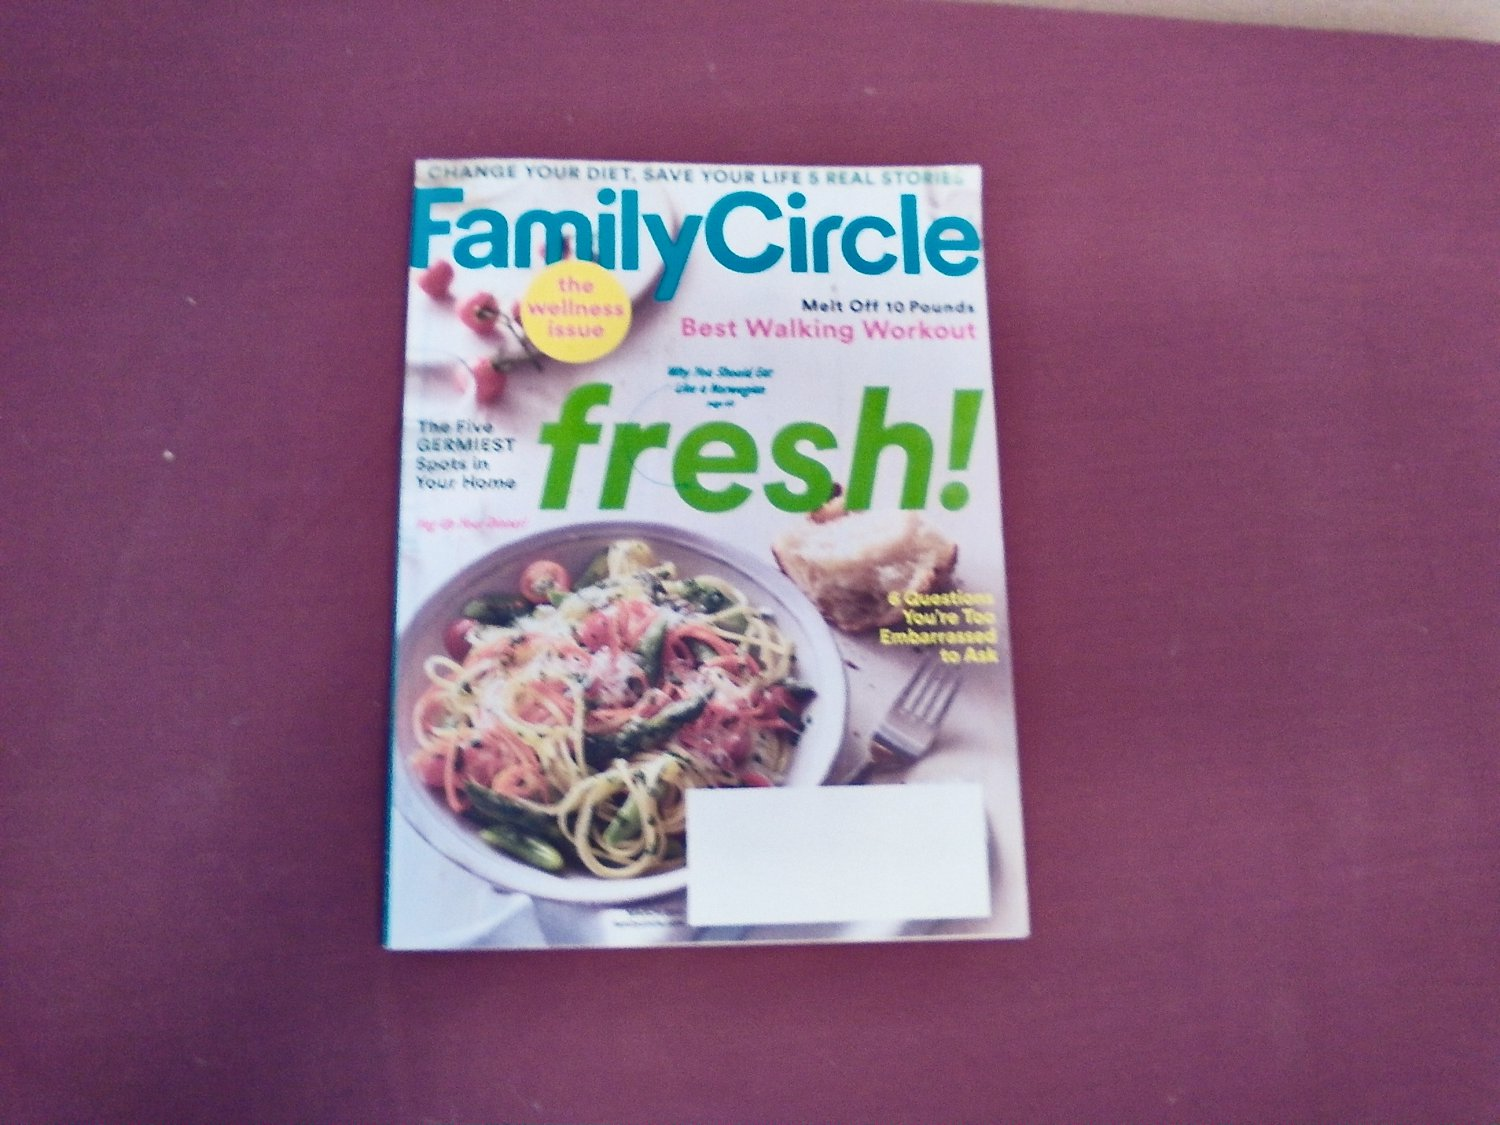 Family Circle Magazine March 2017 Volume 130 Number 3 - The Wellness Issue (G1)